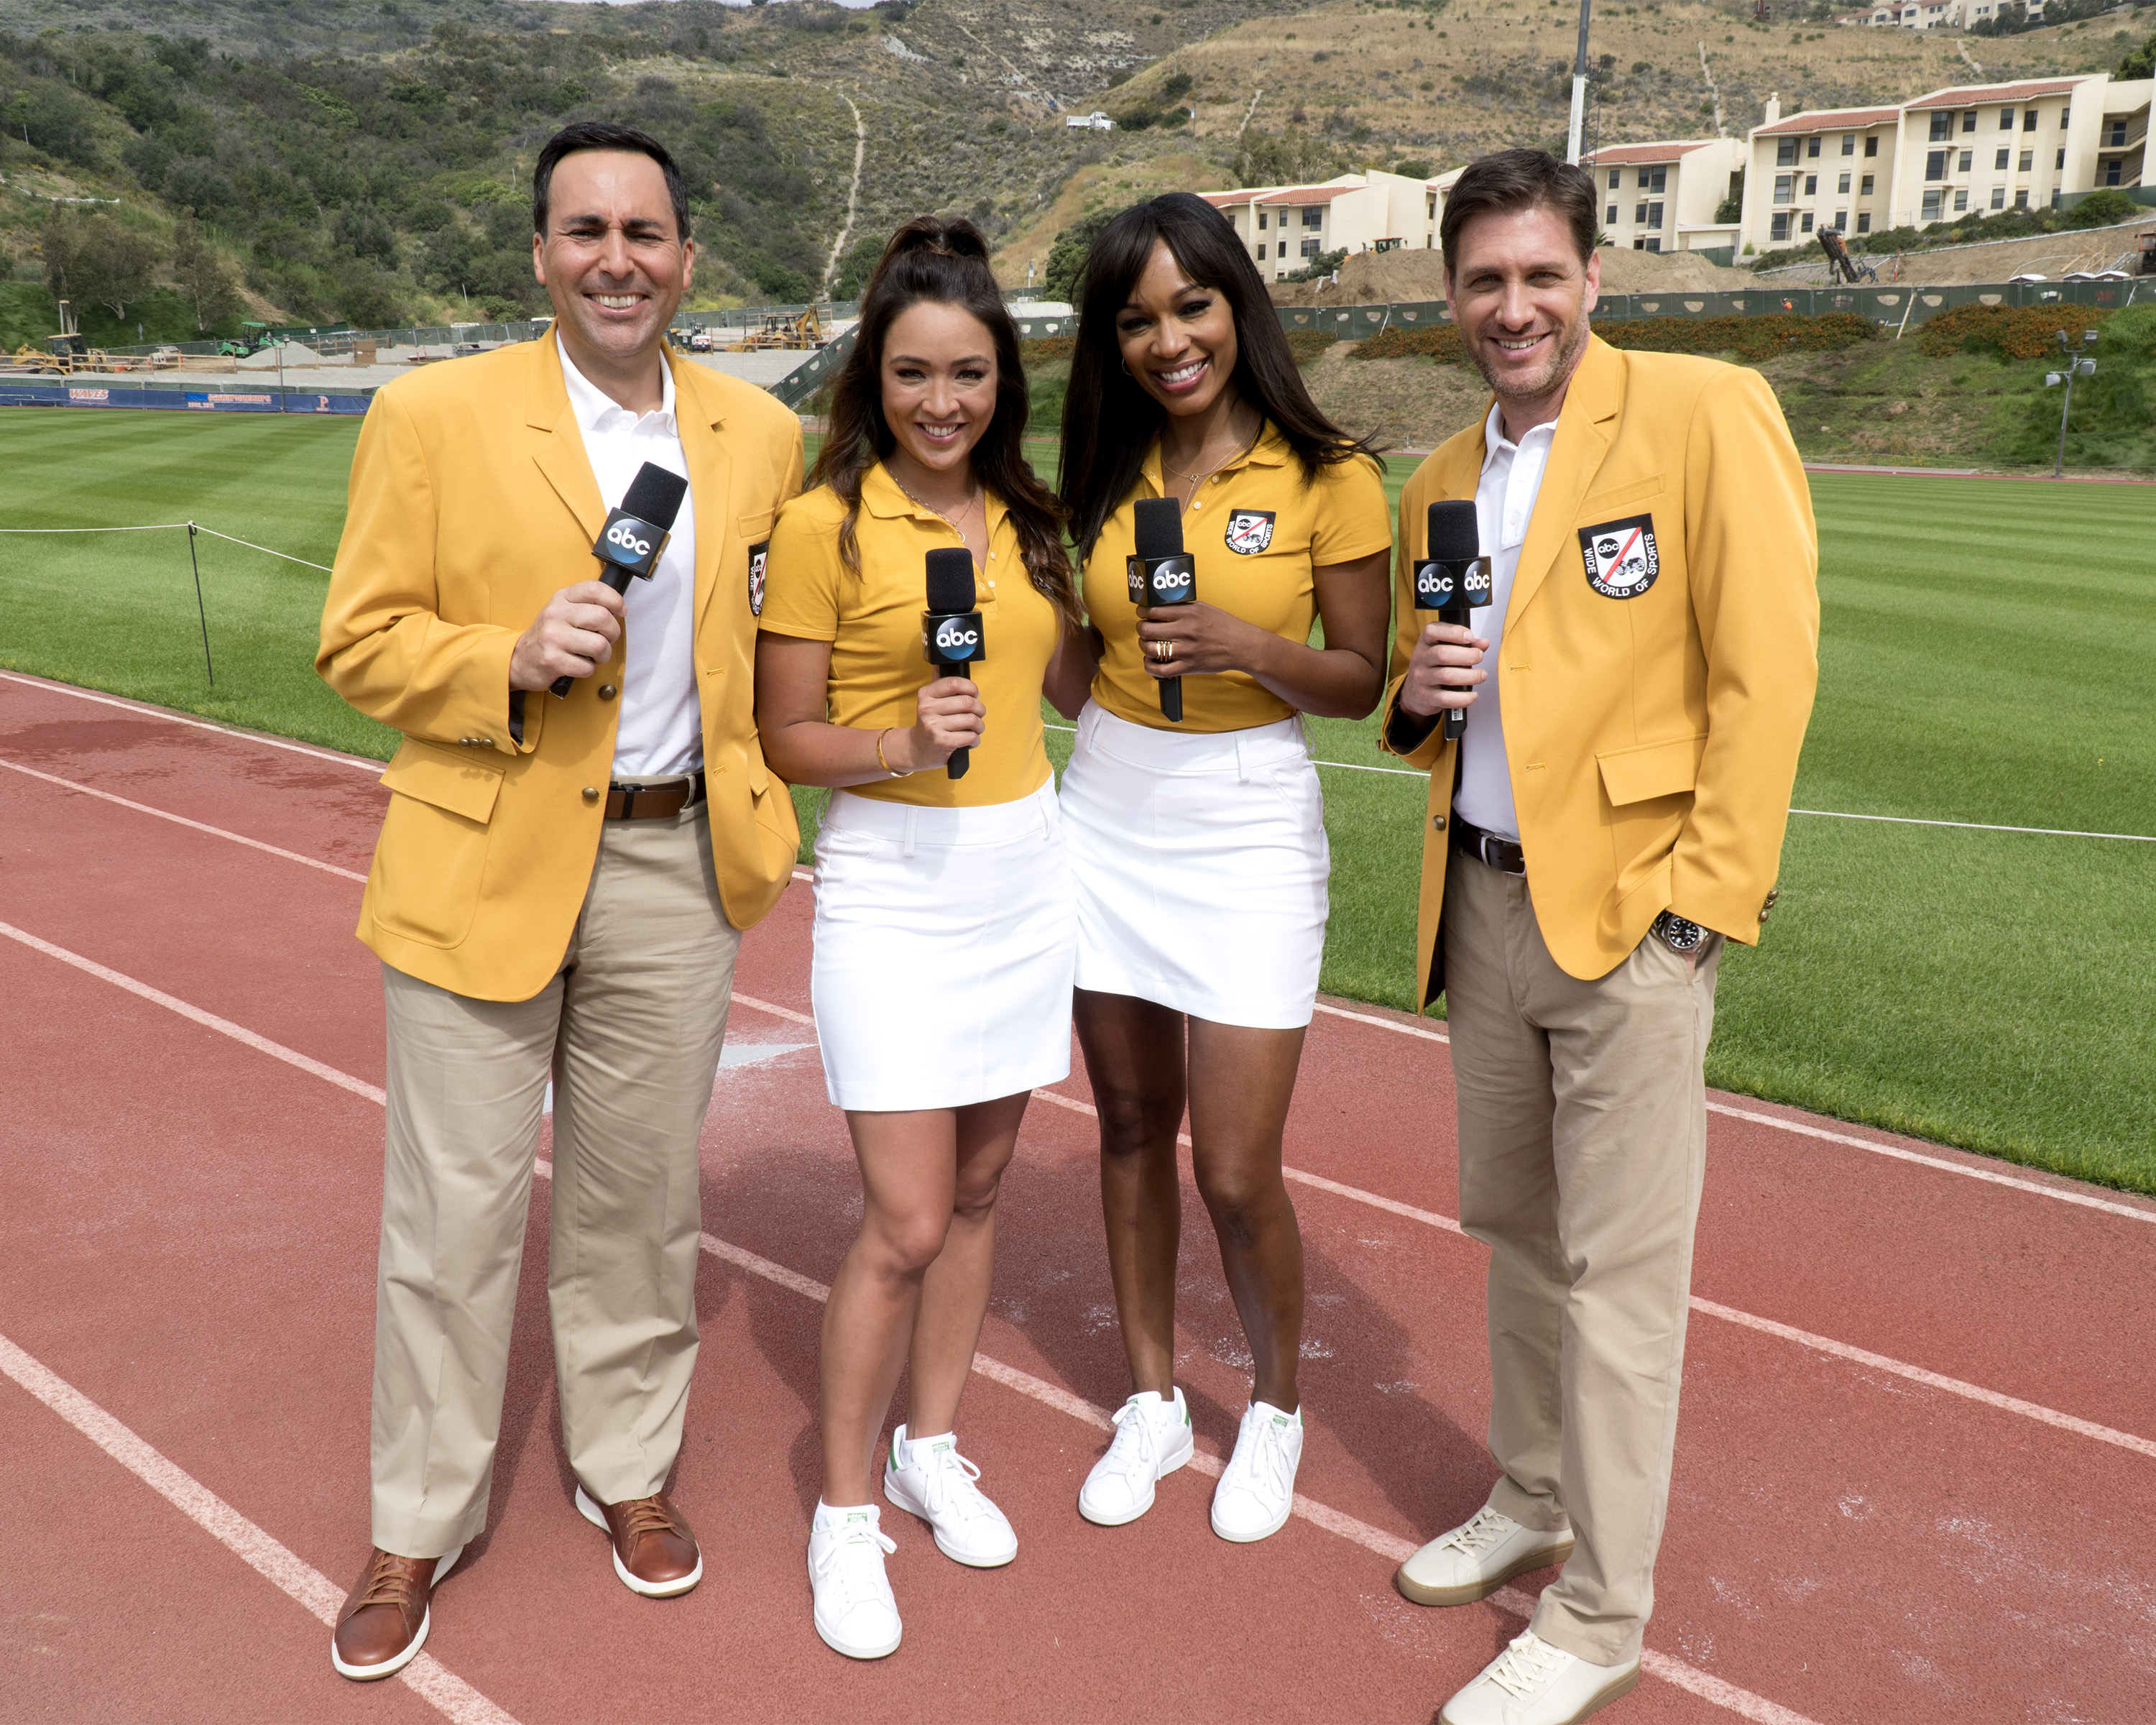 The 70s And 80s Television Pop Culture Classic Battle Of Network Stars Which Premiered From ABC Sports In 1976 Continued For 13 Years